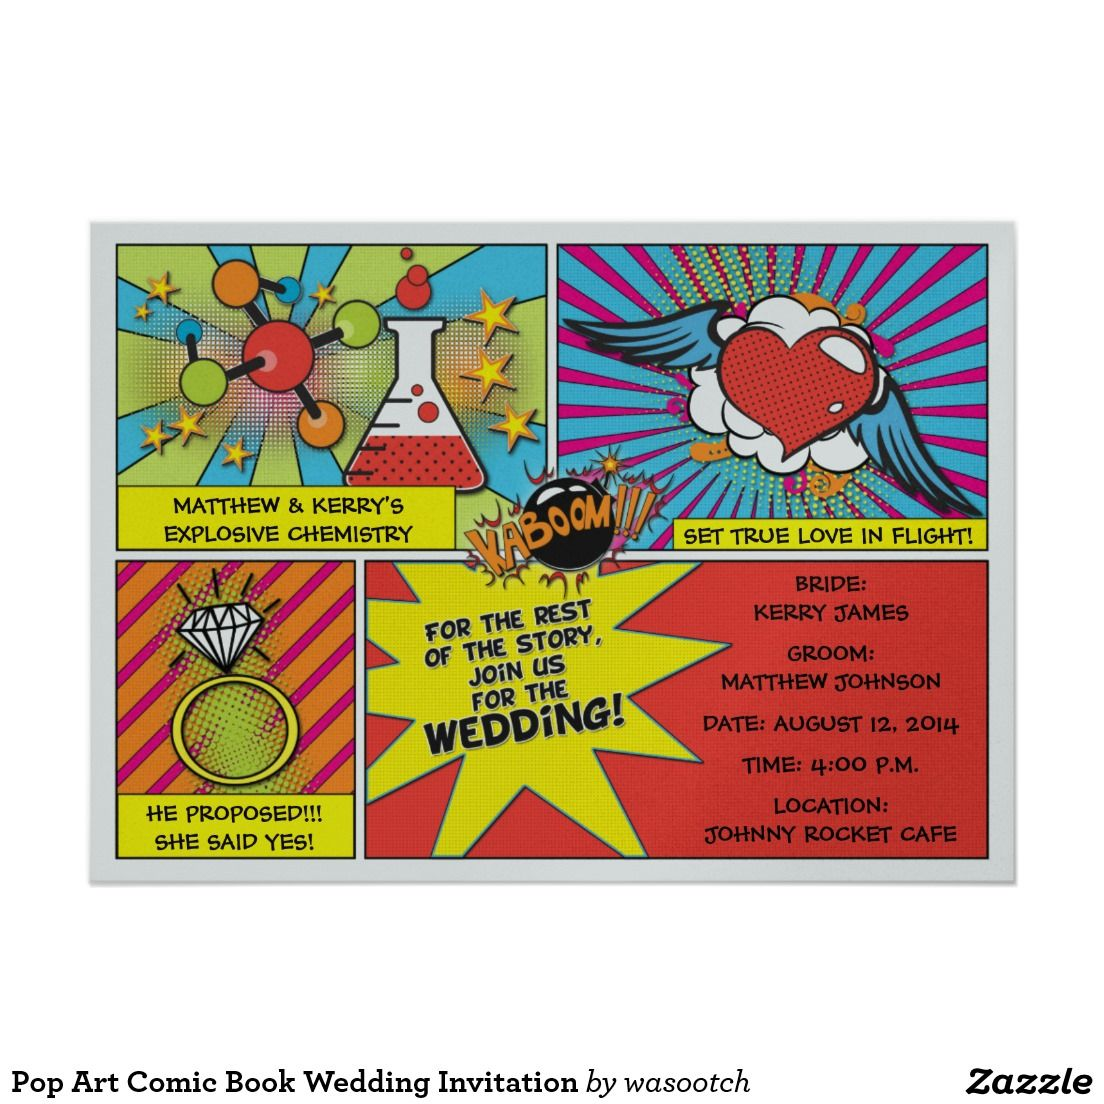 Pop Art Comic Book Wedding Invitation | Projects to complete ...